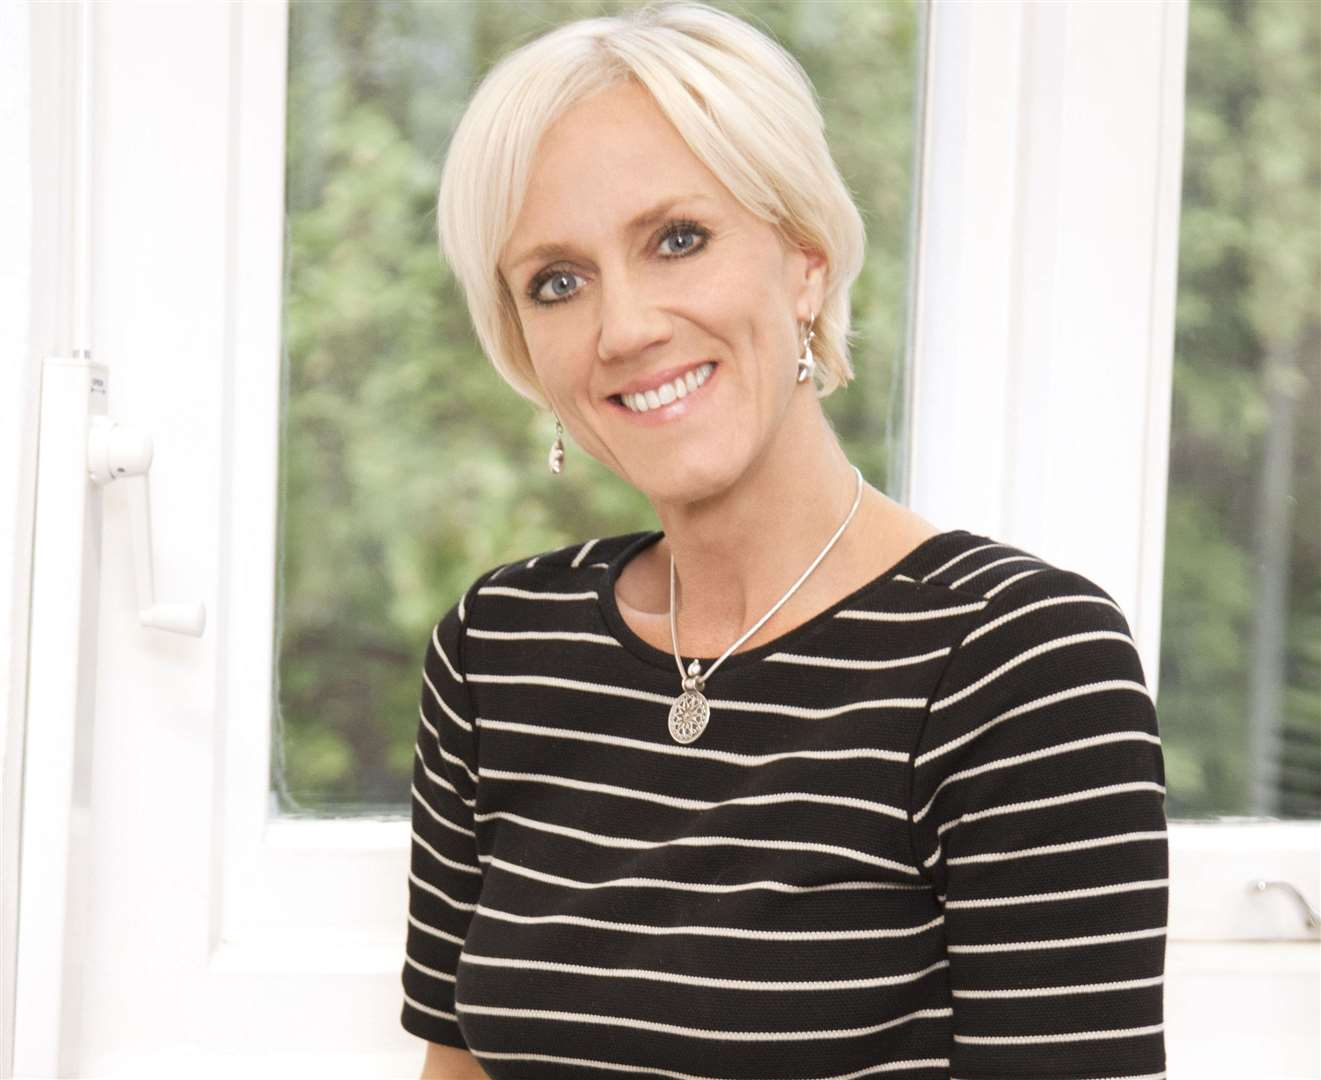 Laura Tenison, founder of JoJo Maman Bebe